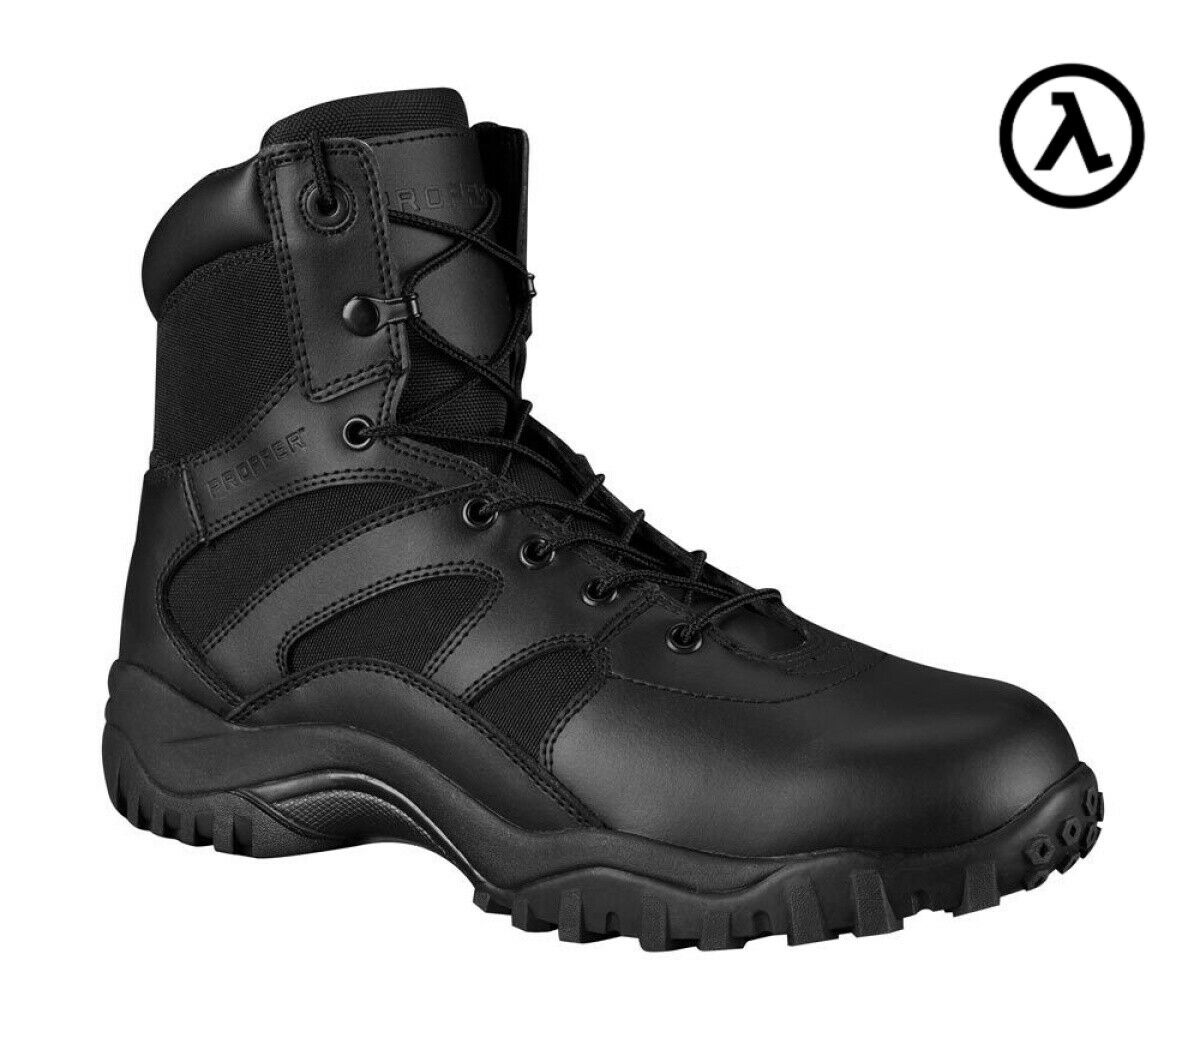 PROPPER 6  TACTICAL DUTY SIDE-ZIP BOOTS F4522  ALL SIZES - NEW